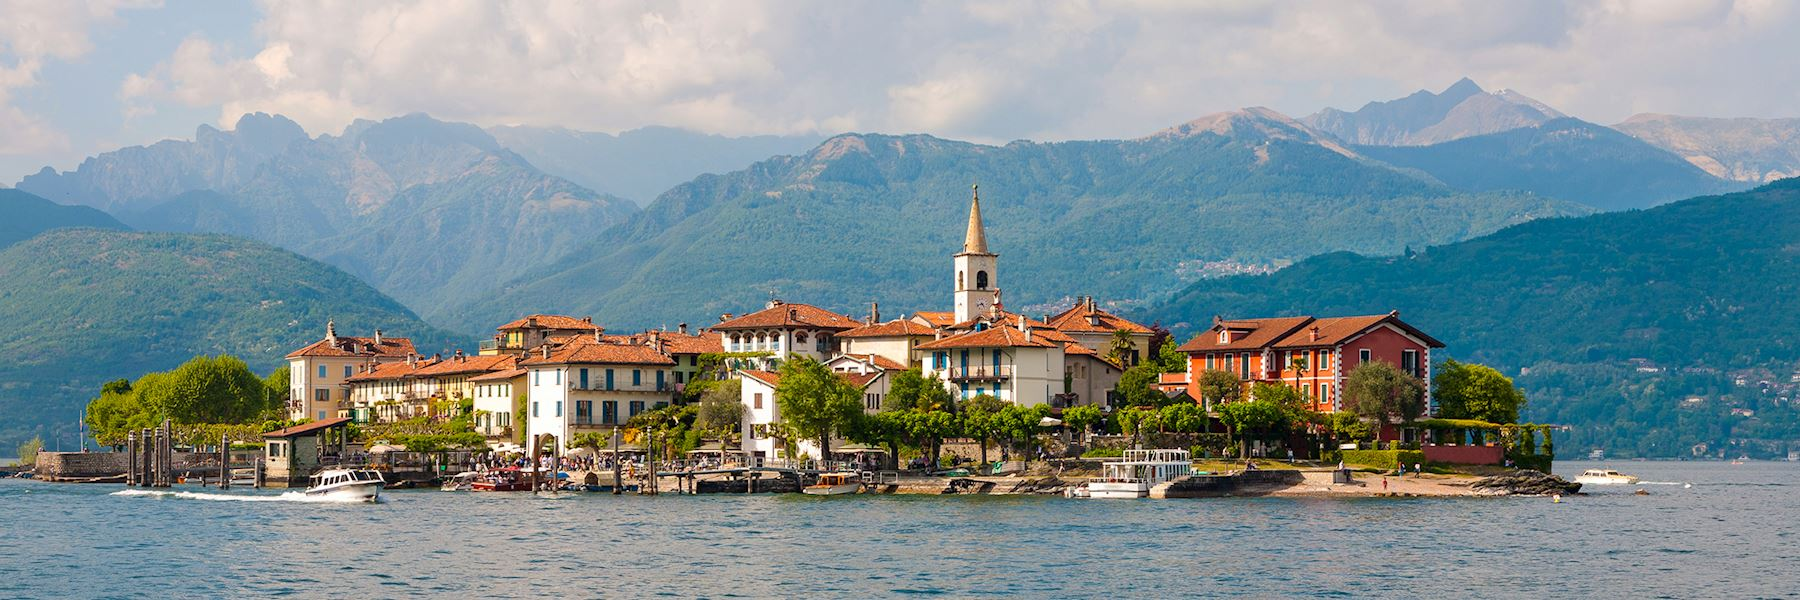 Tailor Made Vacations In Stresa Audley Travel